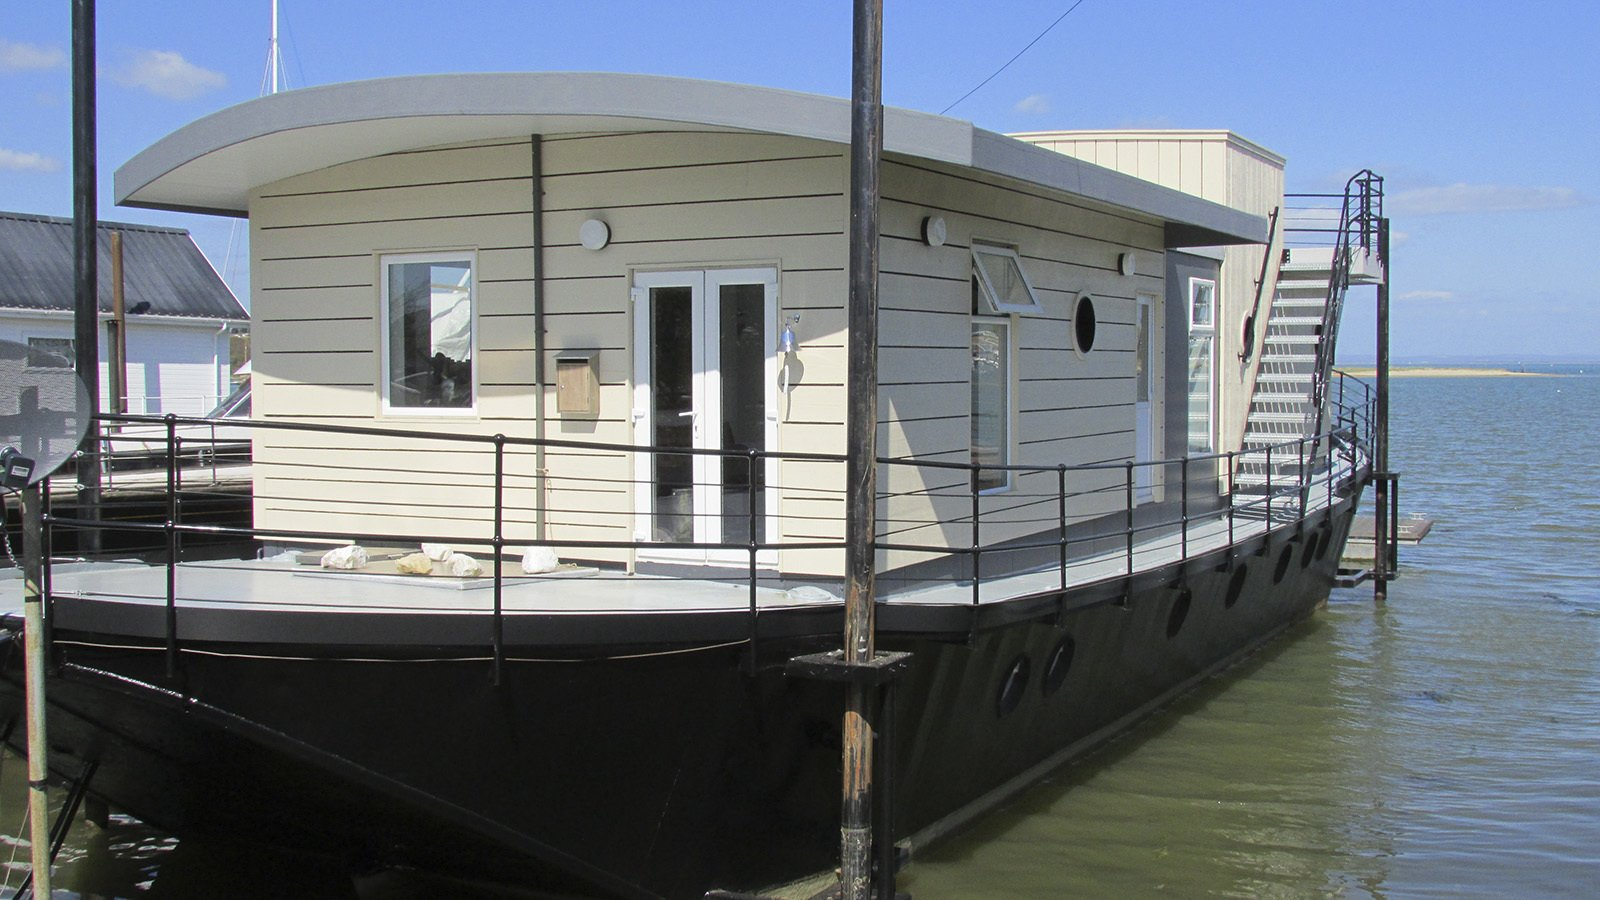 The Harbour Houseboat, which offers stunning views across Bembridge Harbour in Isle Of Wight has a commodious open-plan living lounge and kitchen, and warmly furnished rooms with plush Loaf beds.